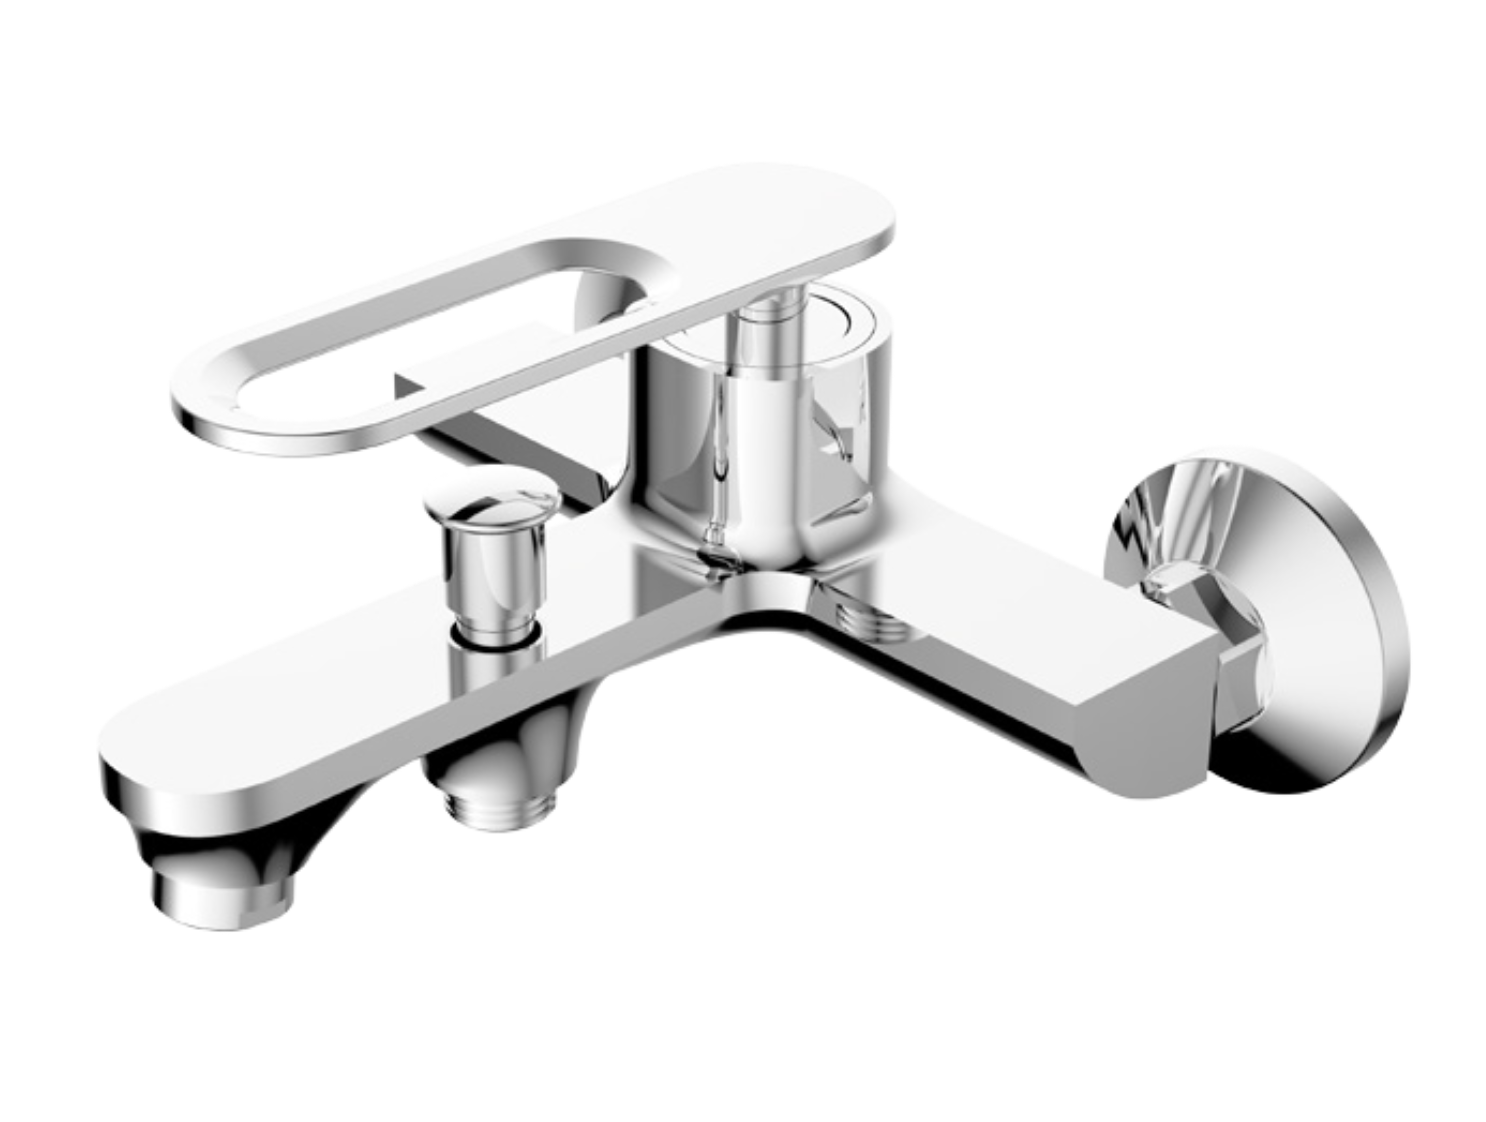 Peking Bath Shower Mixer with Legs